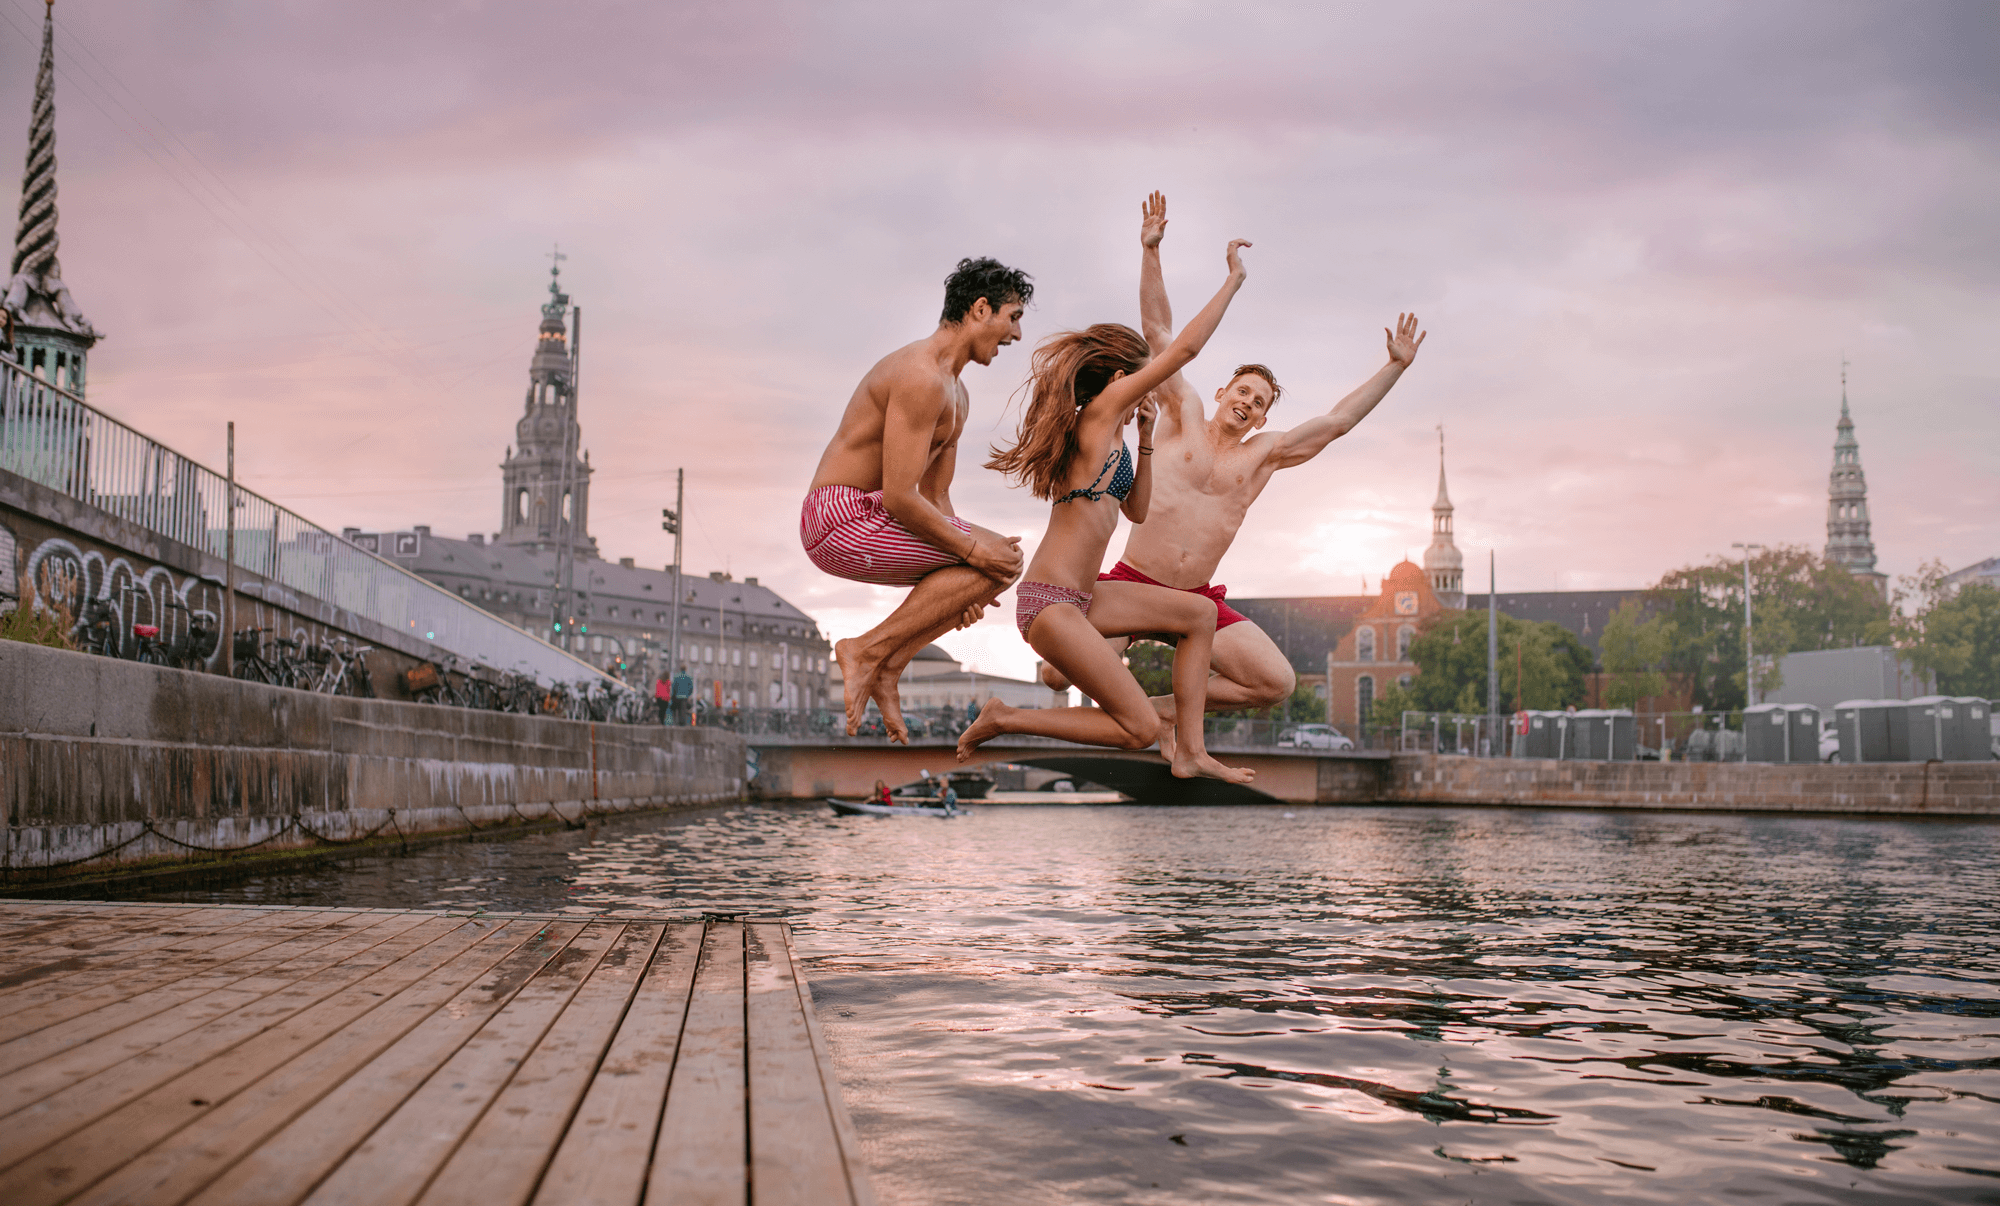 Canva---People-Jumping-into-Lake (1).png